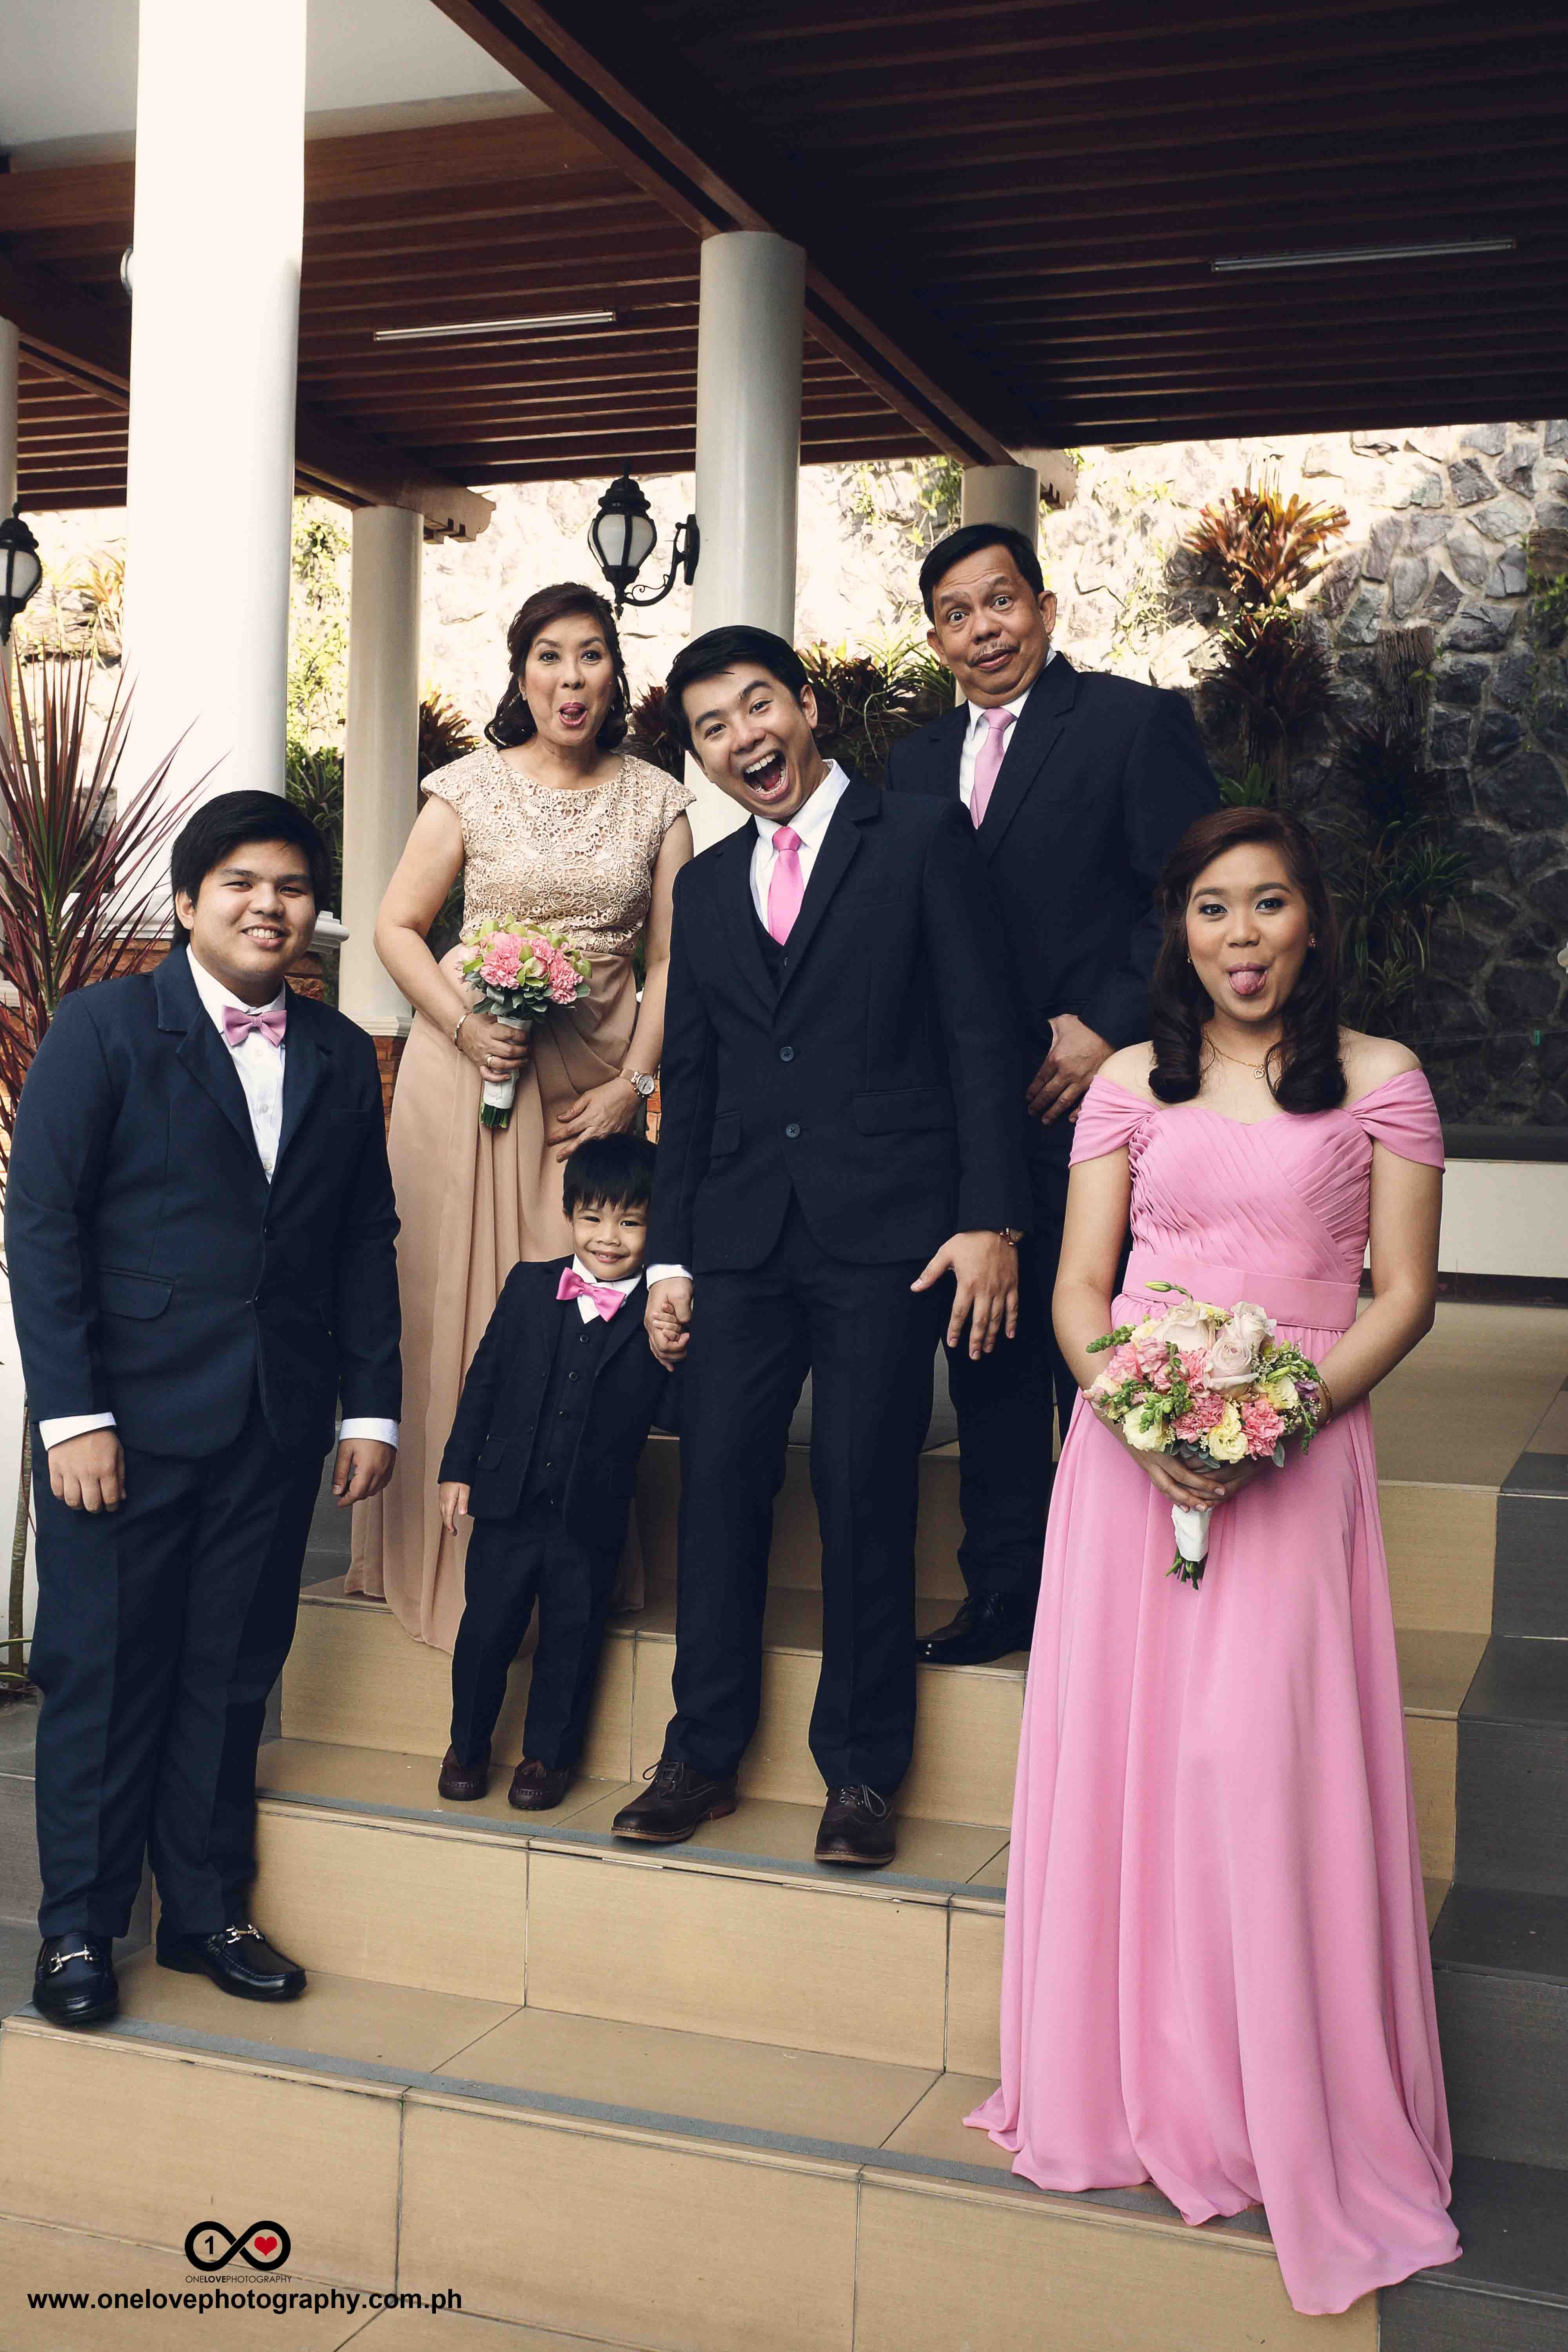 Oh Happy Days Will Always Be When We Are With Our Family Onelovephotographyph Oneloveph Weddingph Wedding Dresses Wedding Suppliers Wedding Preparation